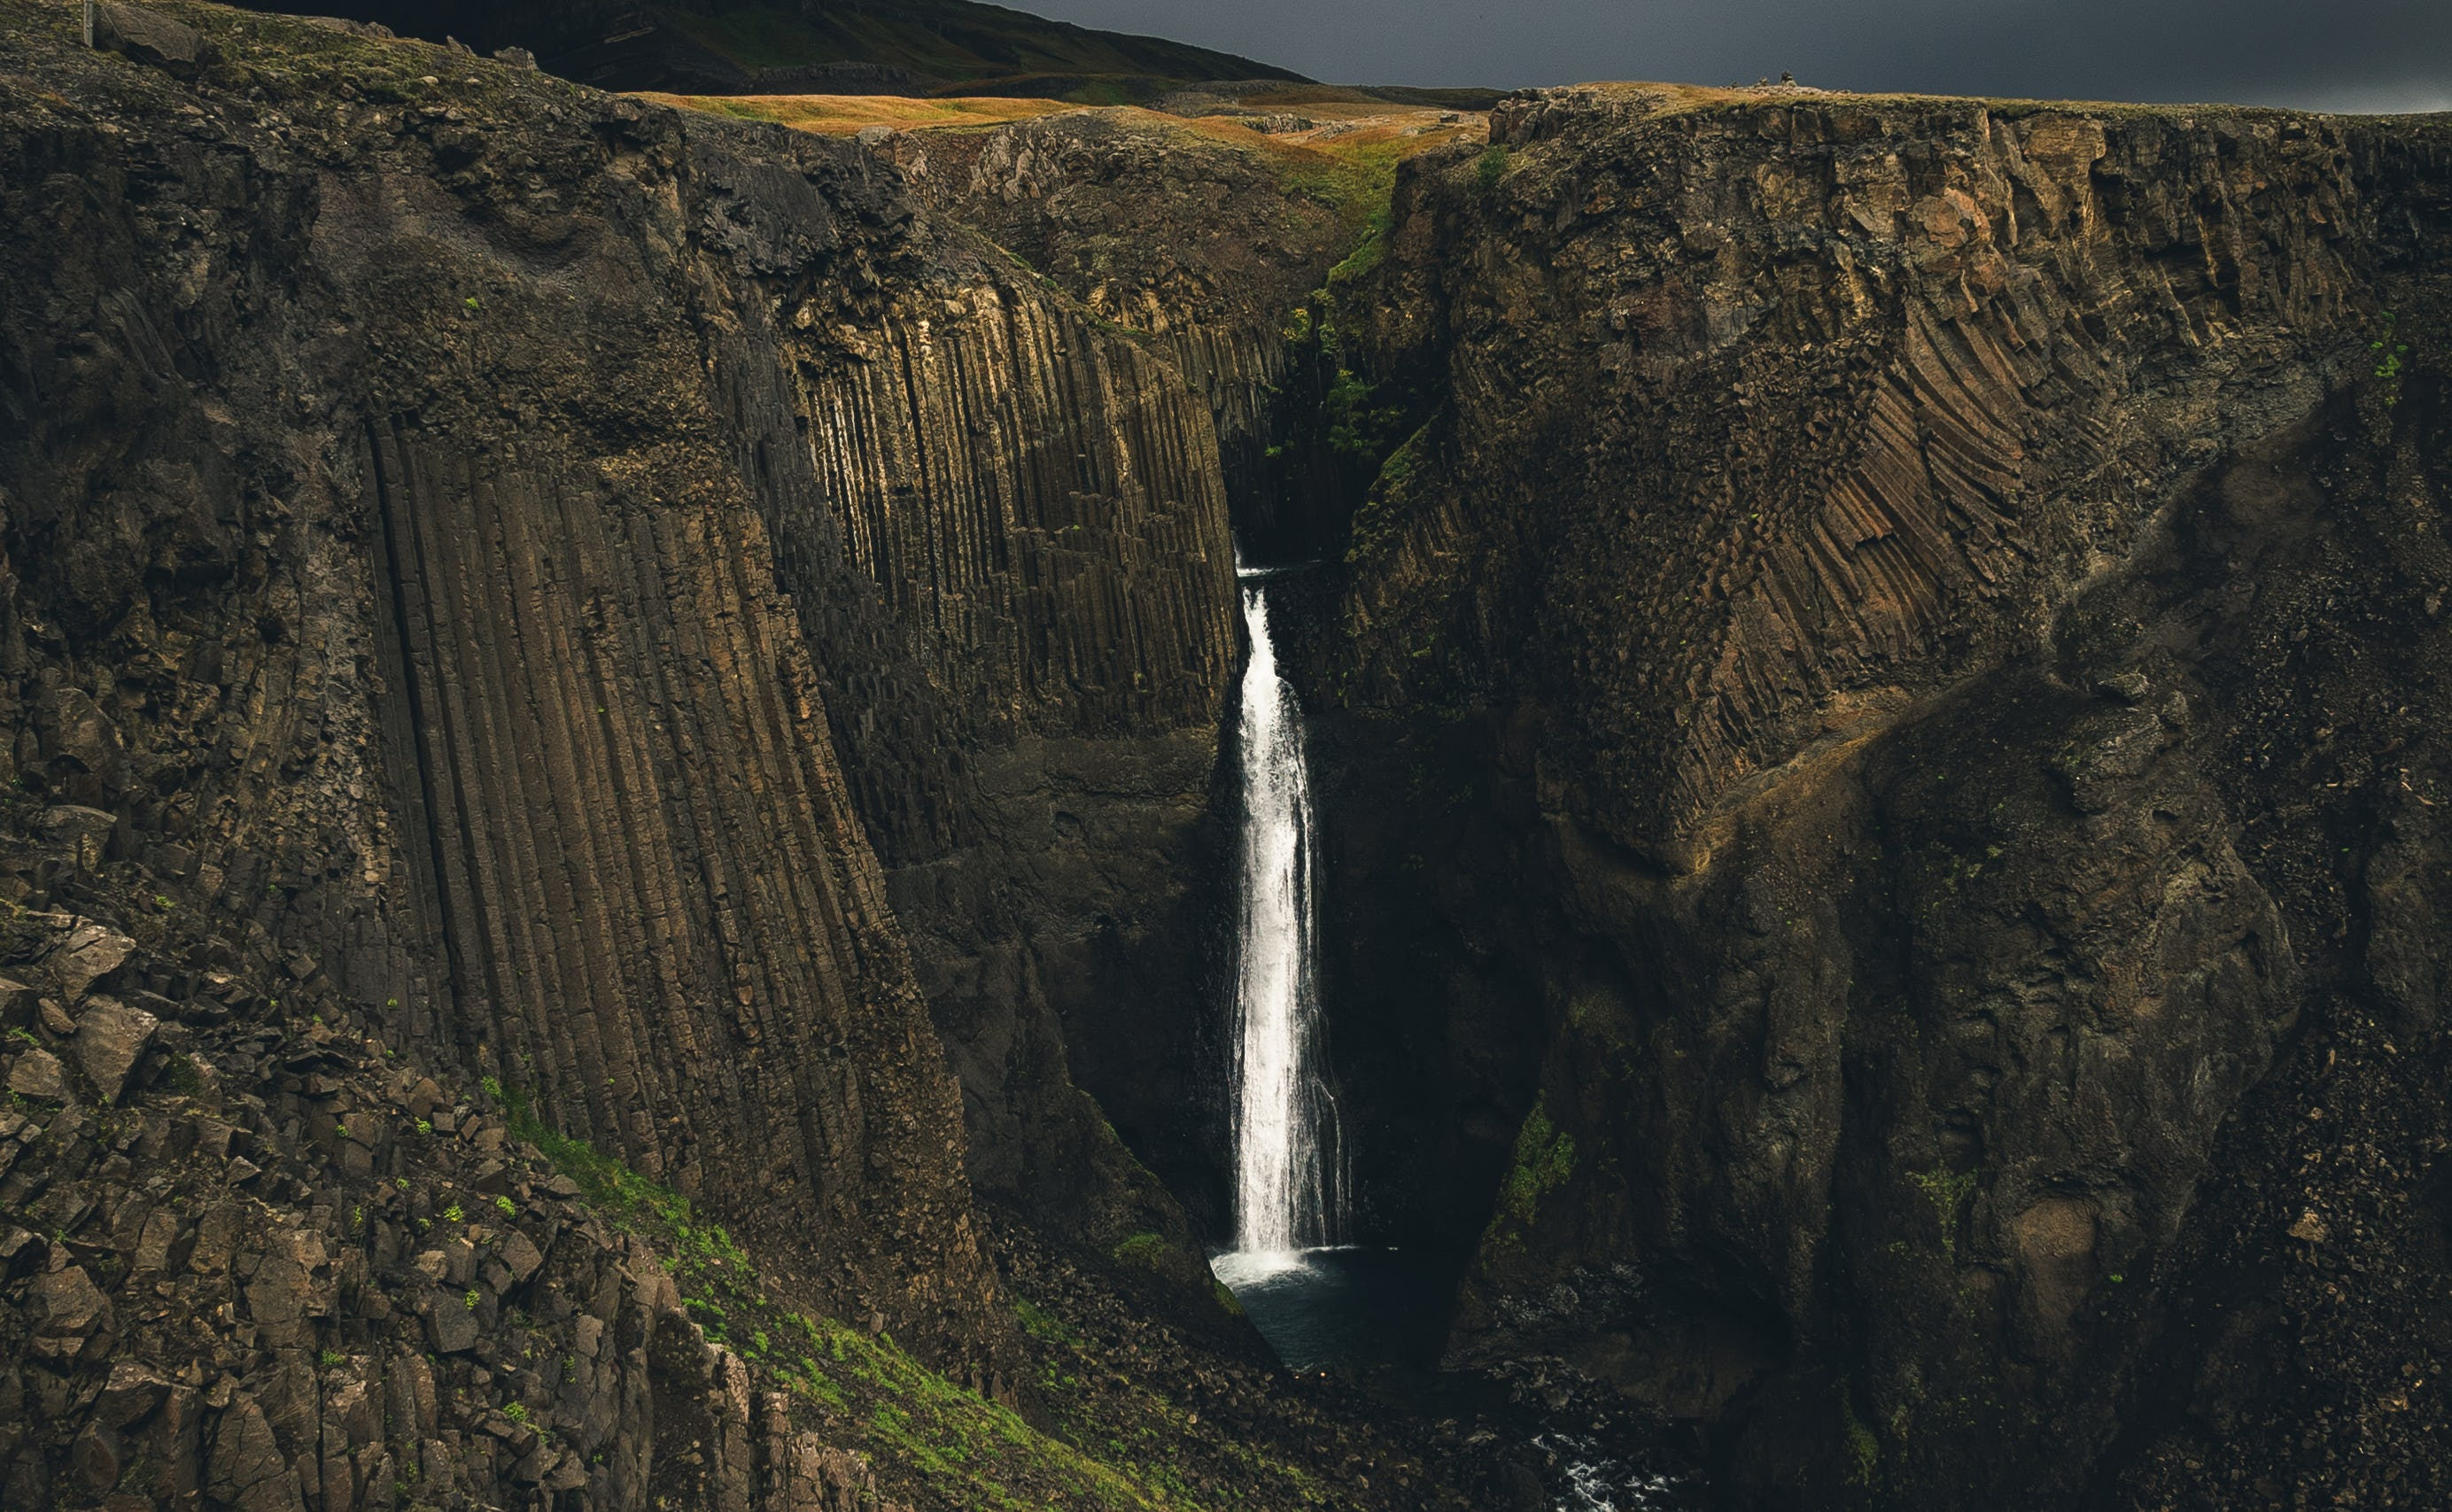 Litlanesfoss is a beautiful east Iceland waterfall with basalt columns surrounding it.